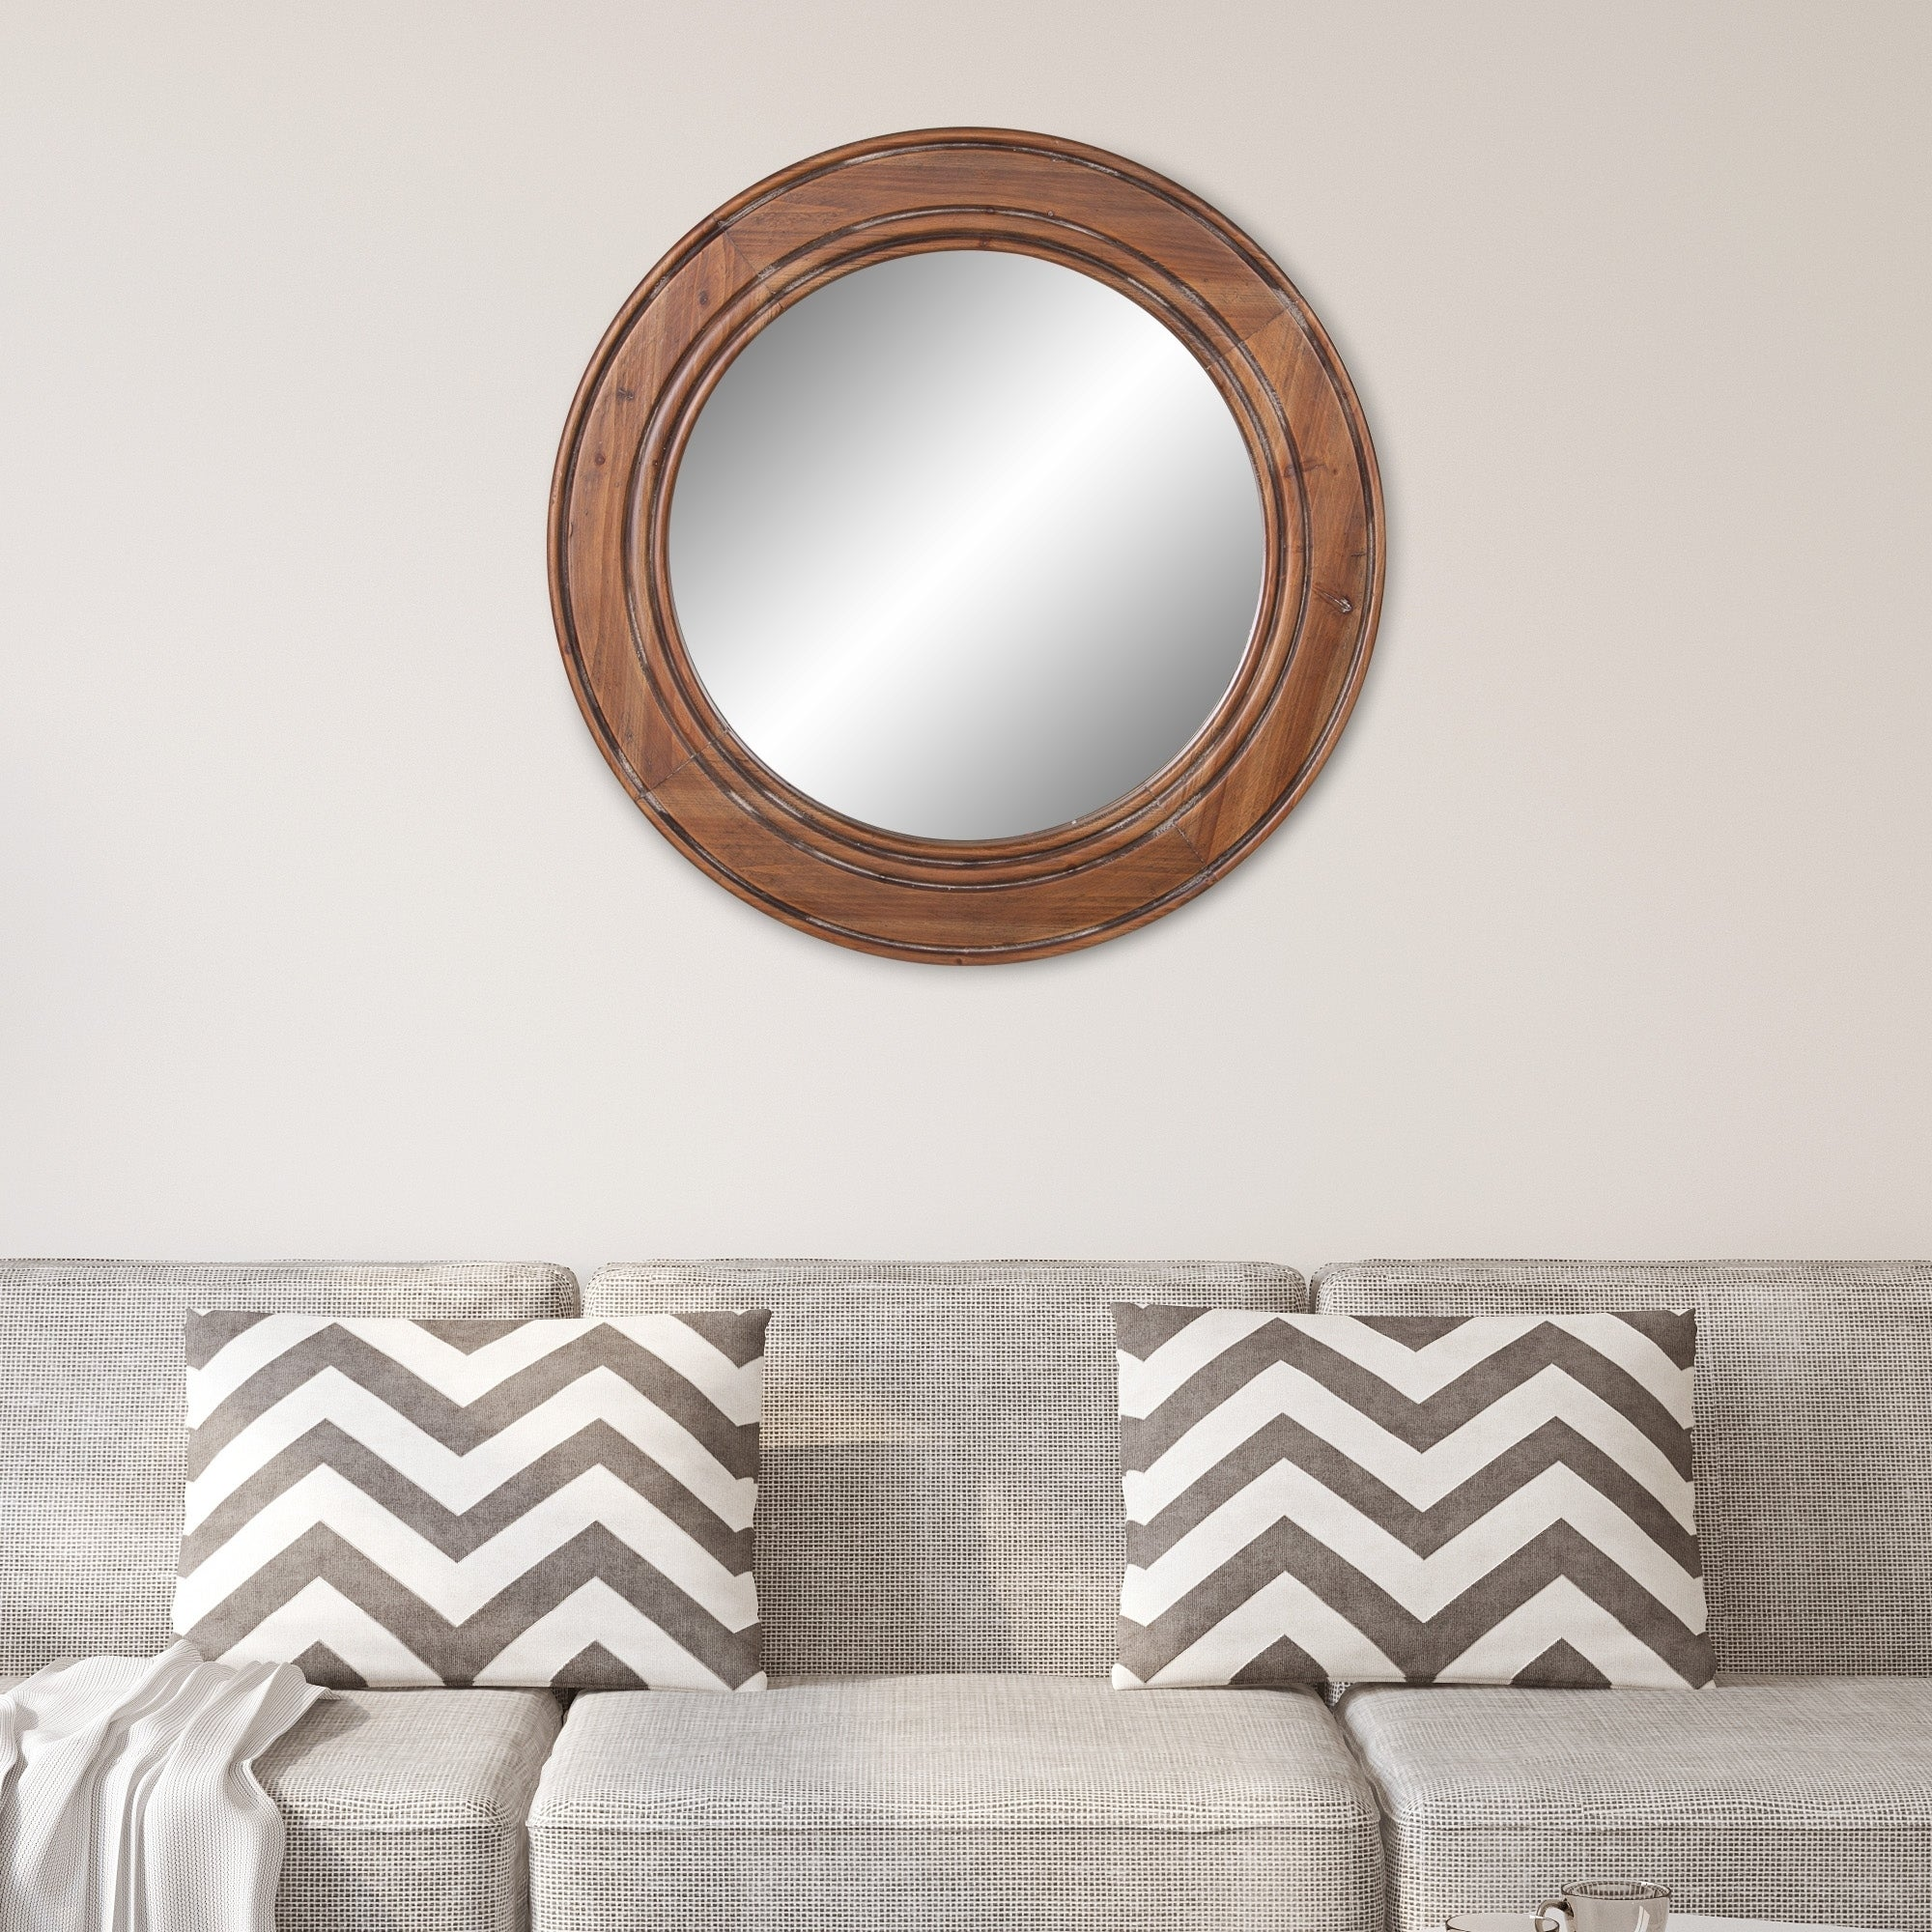 Patton Wall Decor Reclaimed Wood Large Round Wall Accent Mirror On Sale Overstock 24109438